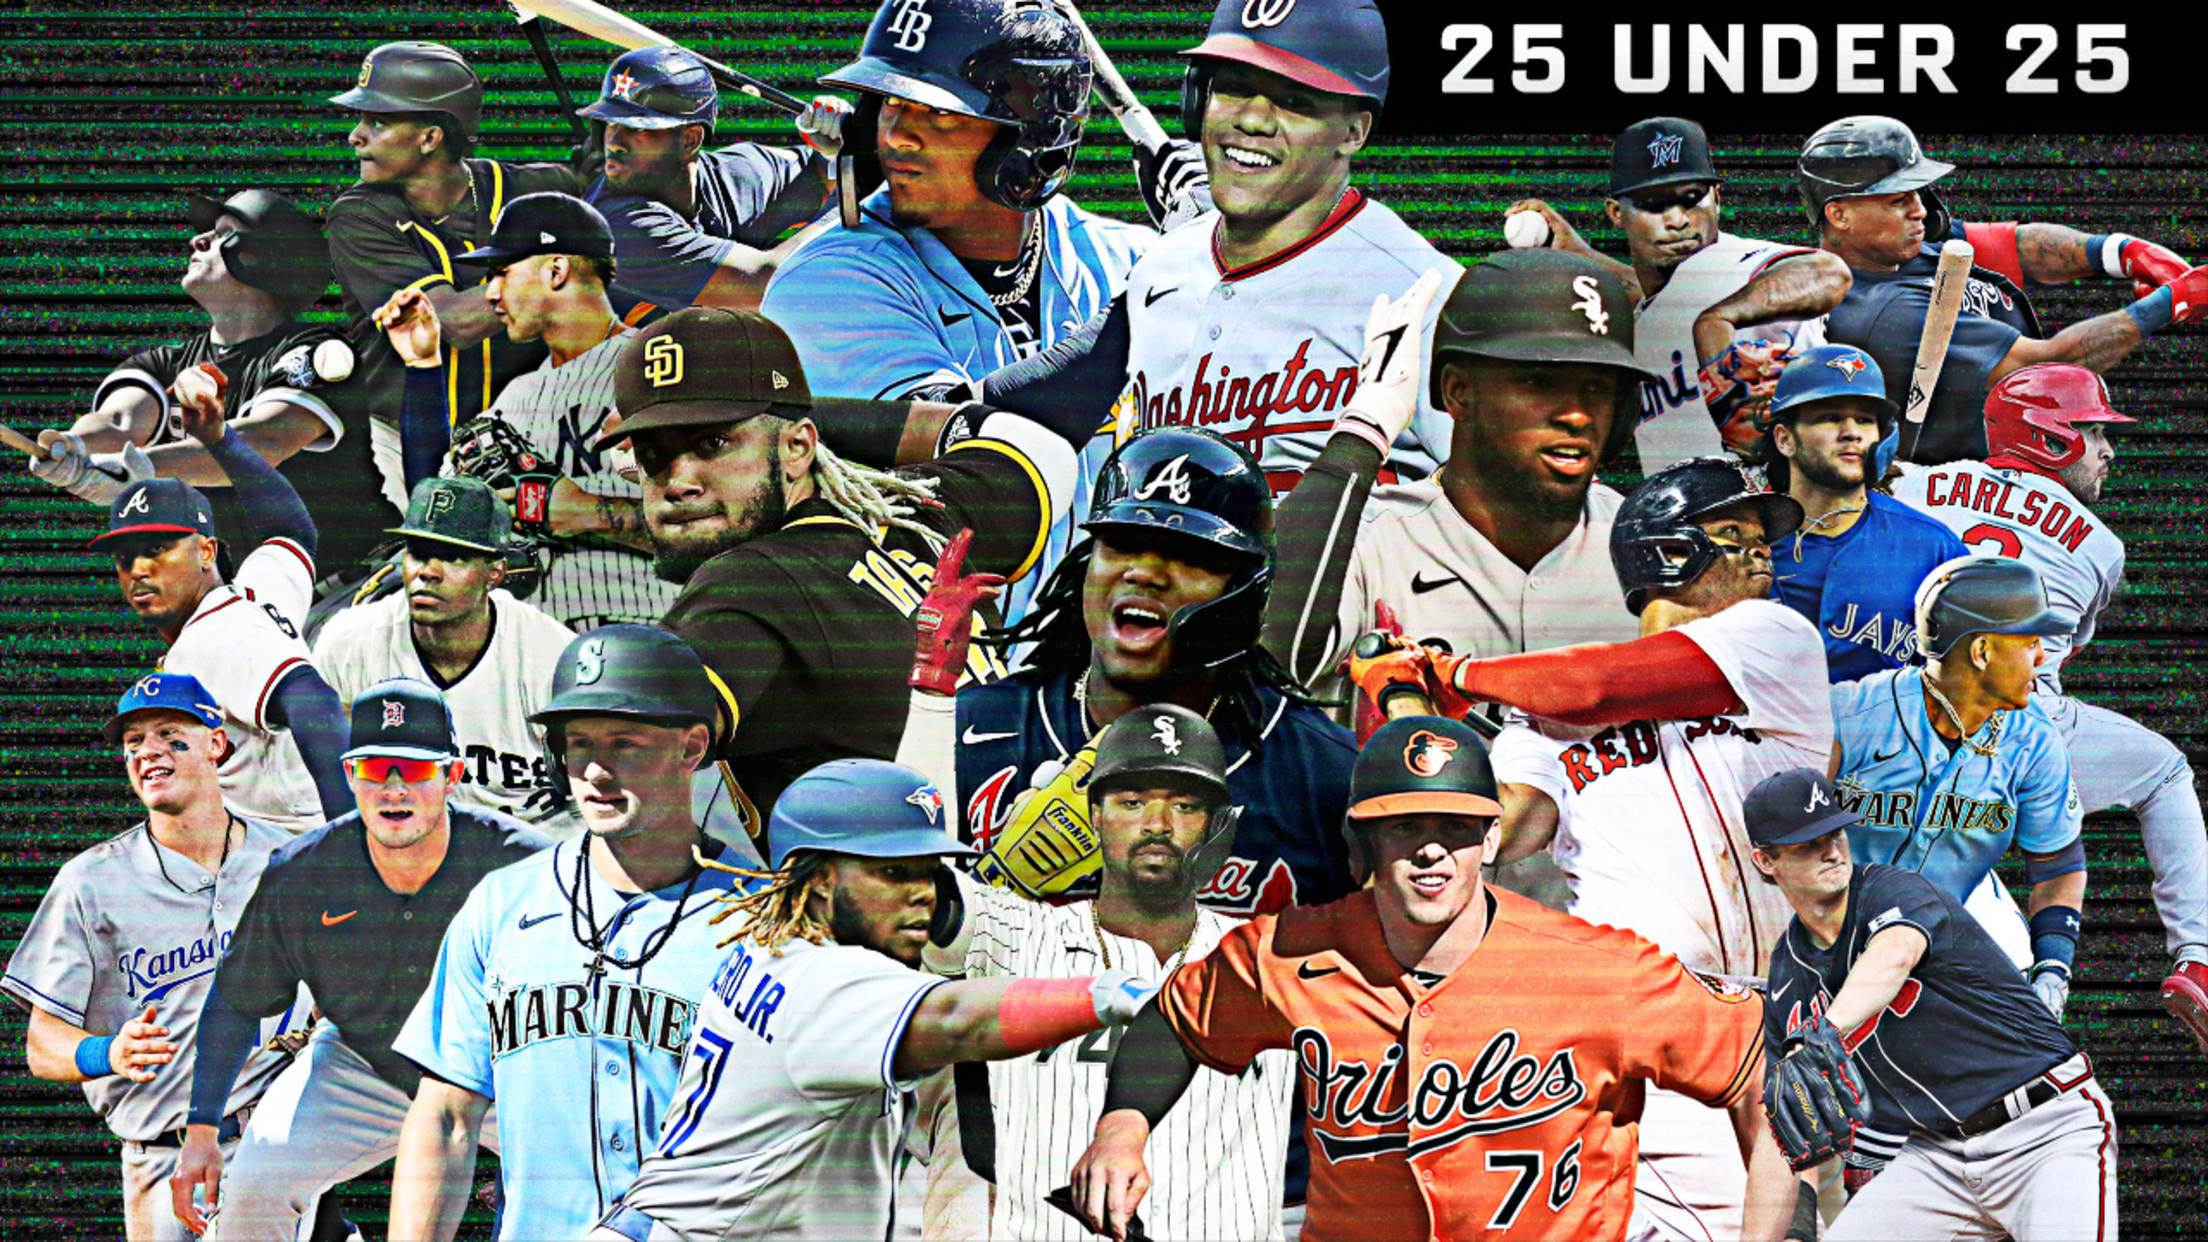 MLB's top 25 players under 25